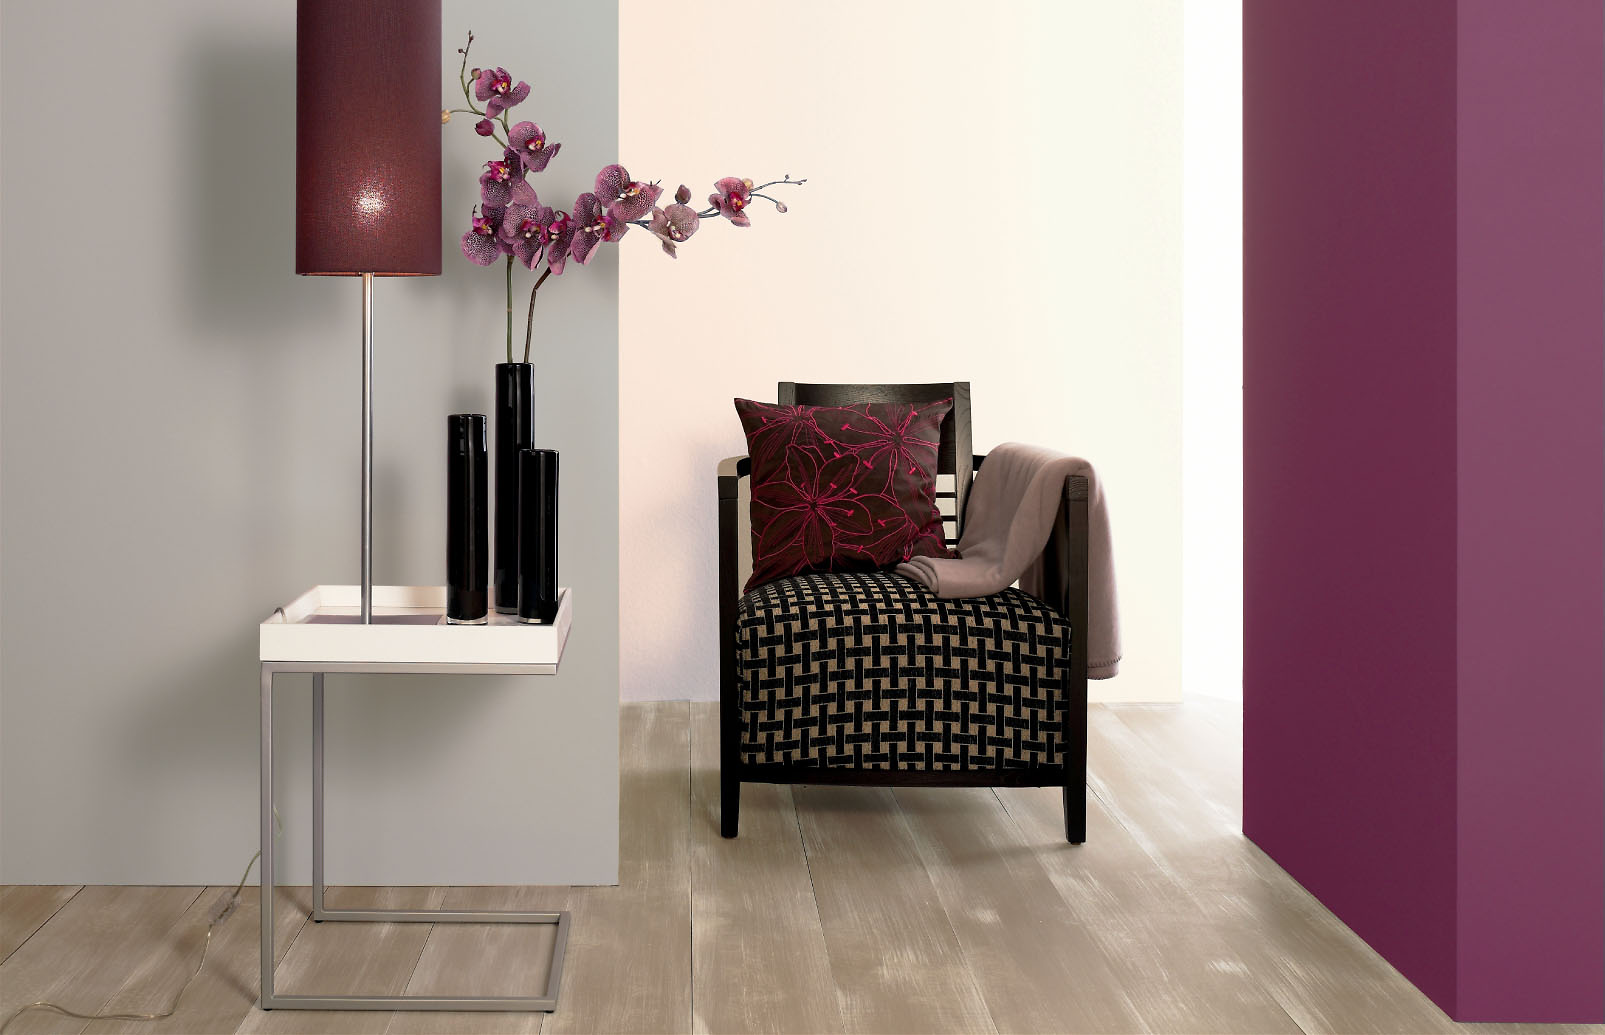 welche wandfarbe zu welchem holz farben passt alpina farbe einrichten. Black Bedroom Furniture Sets. Home Design Ideas